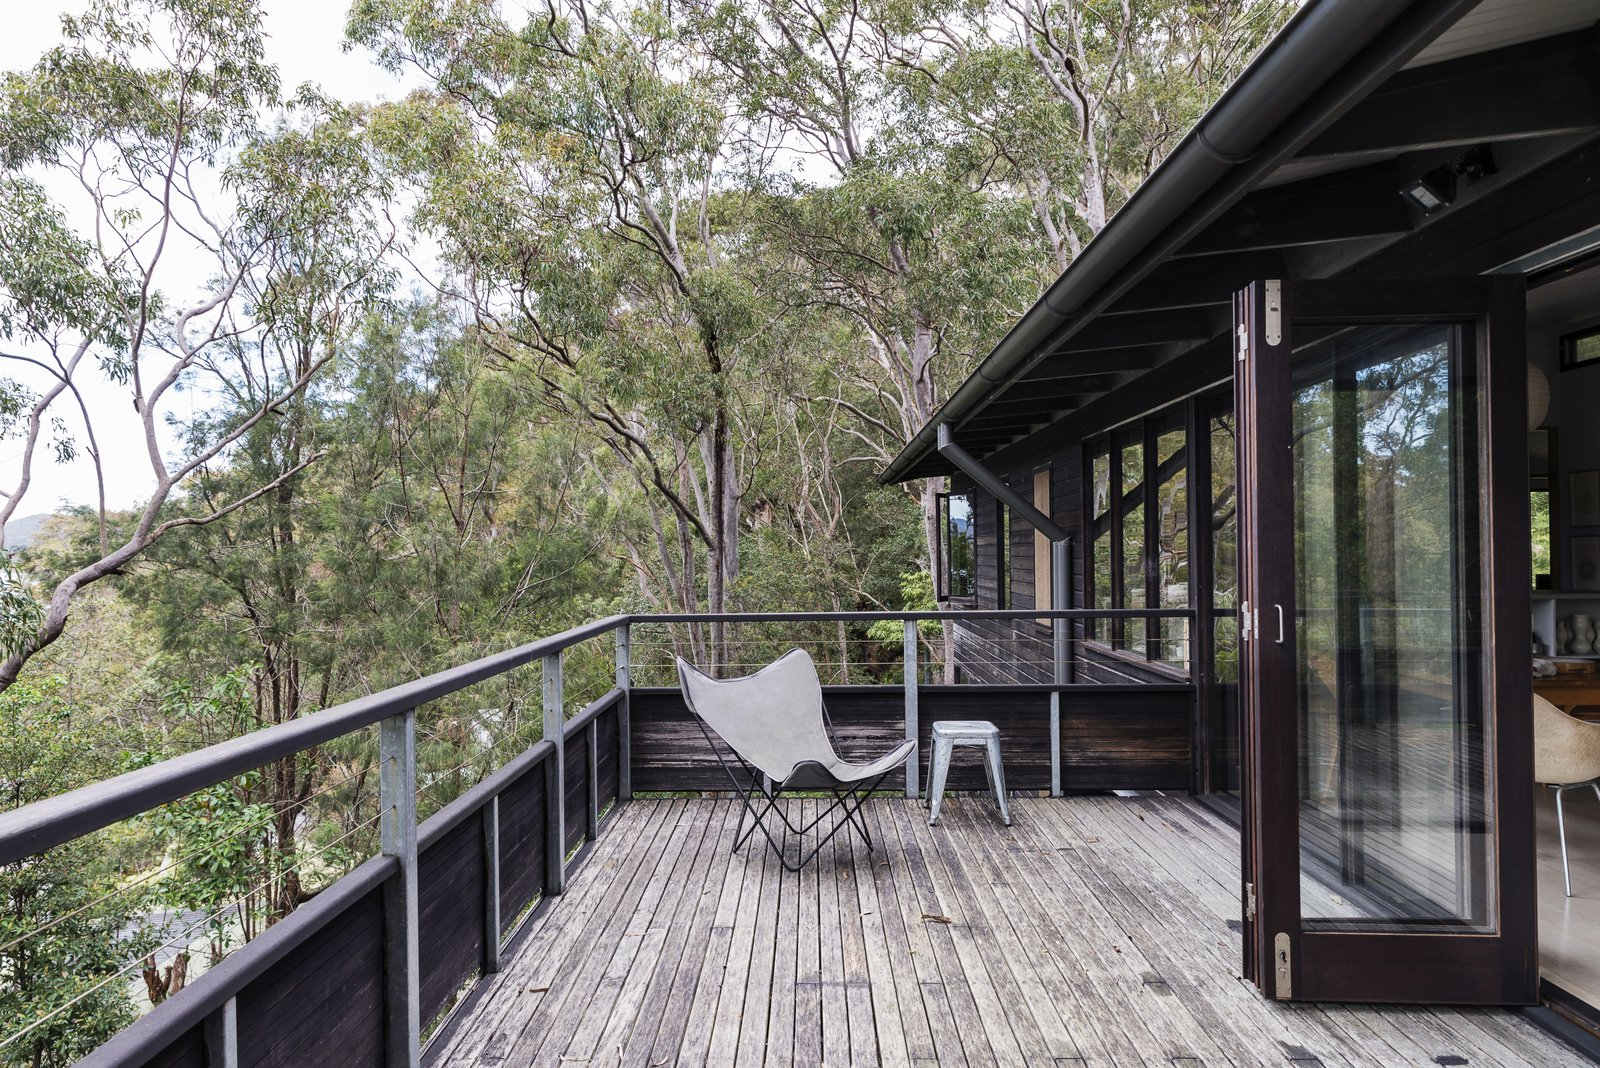 Photo 5 of 13 in Stay in a Riverside Vacation Home That Embraces the Australian Bush